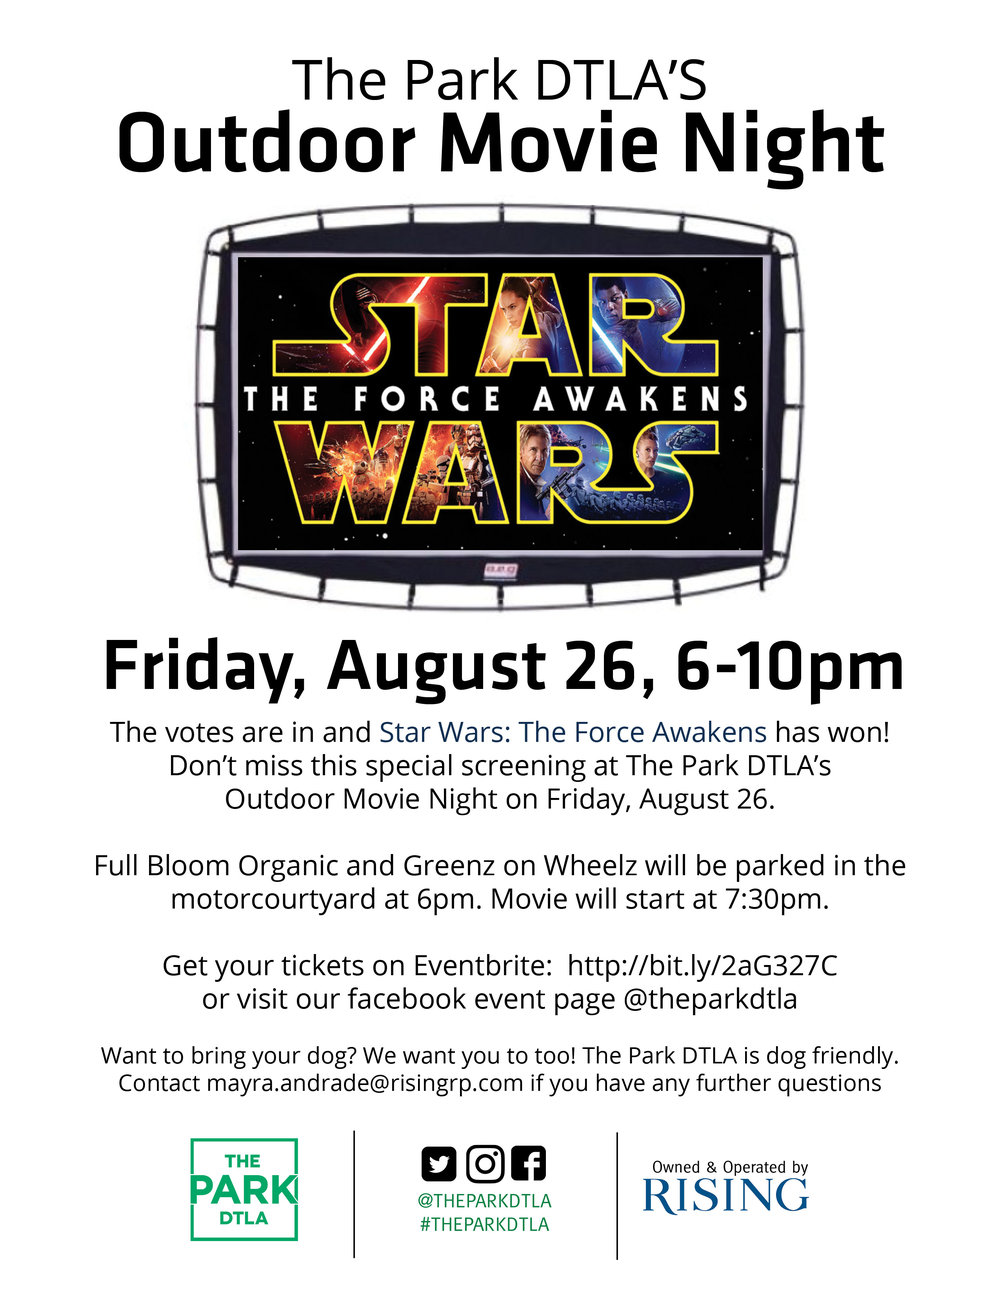 Outdoor Movie Night Flyer.jpg